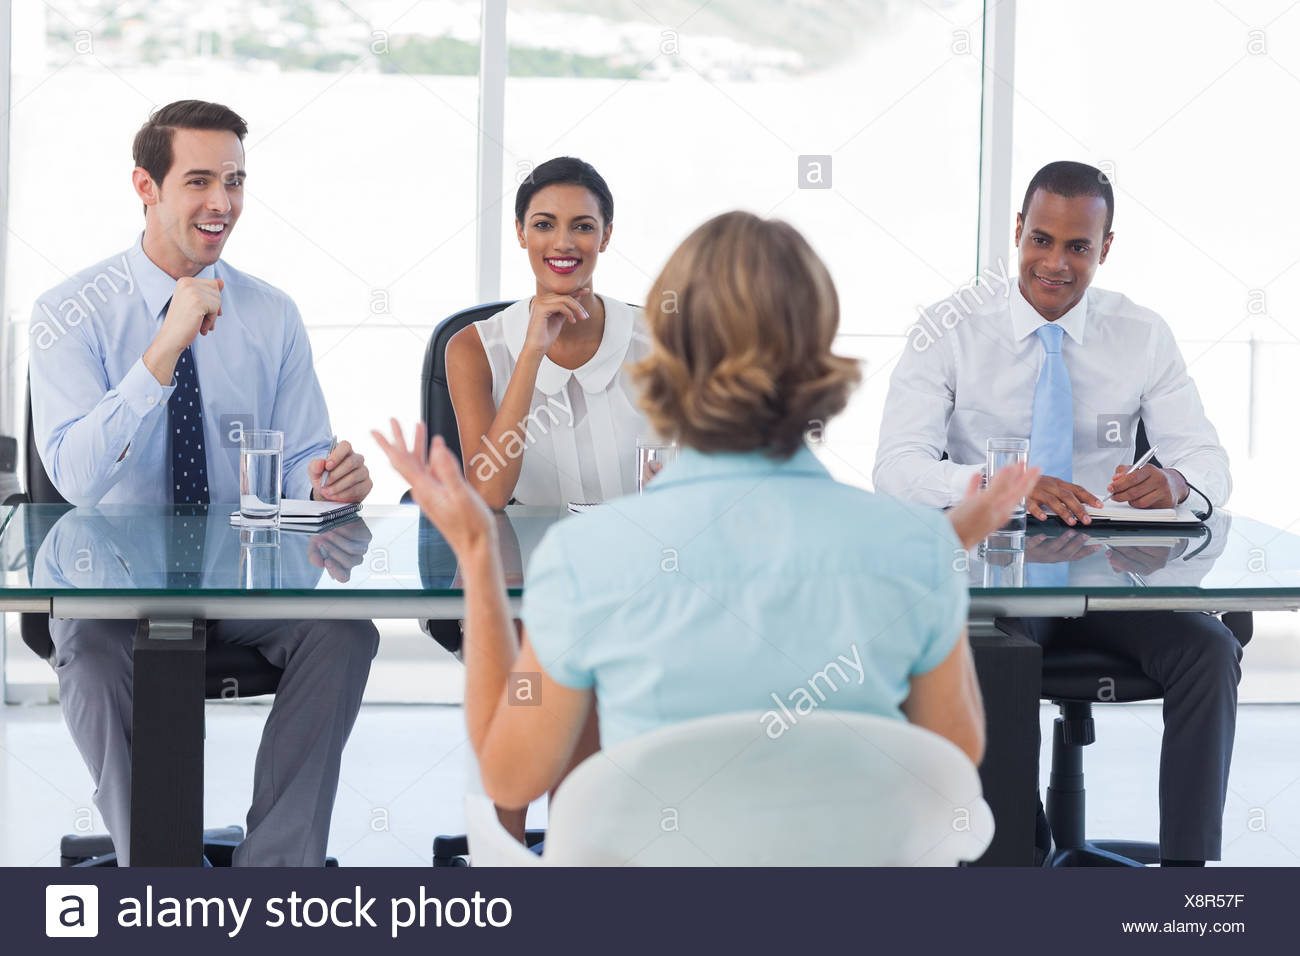 Recruitment consultants smiling in front of an applicant - Stock Image